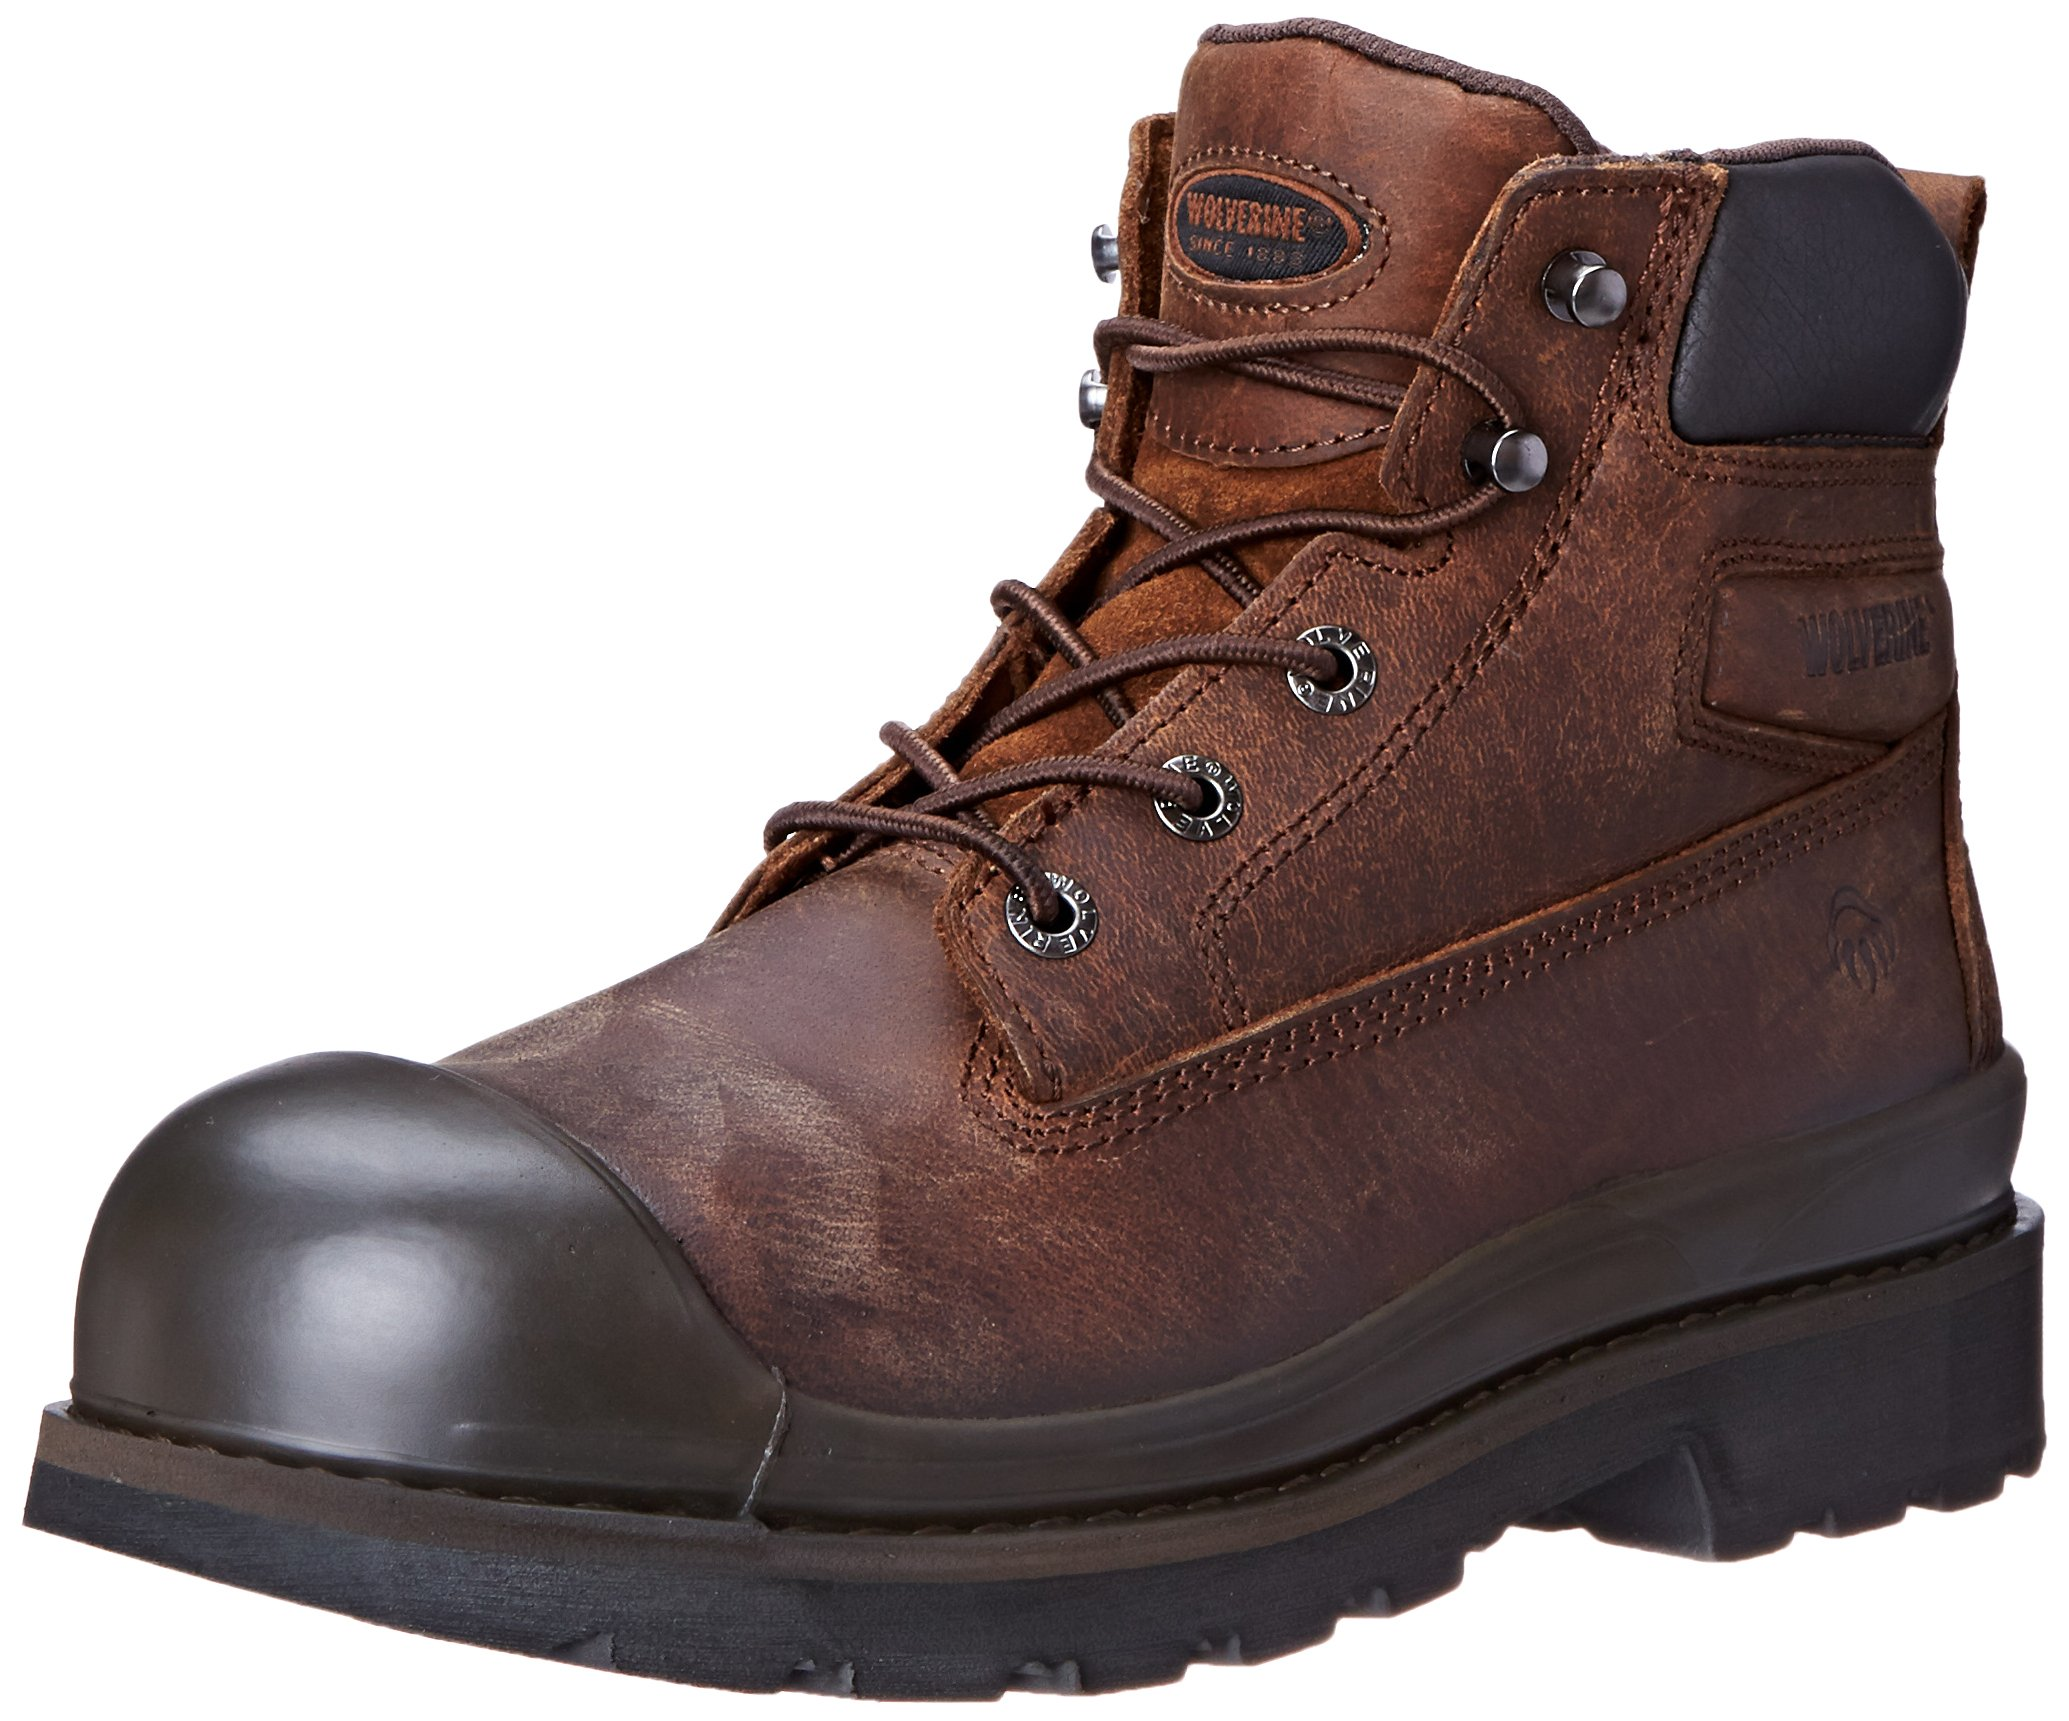 8badc9520c9 Details about Wolverine Men's Crawford WPF SR 6